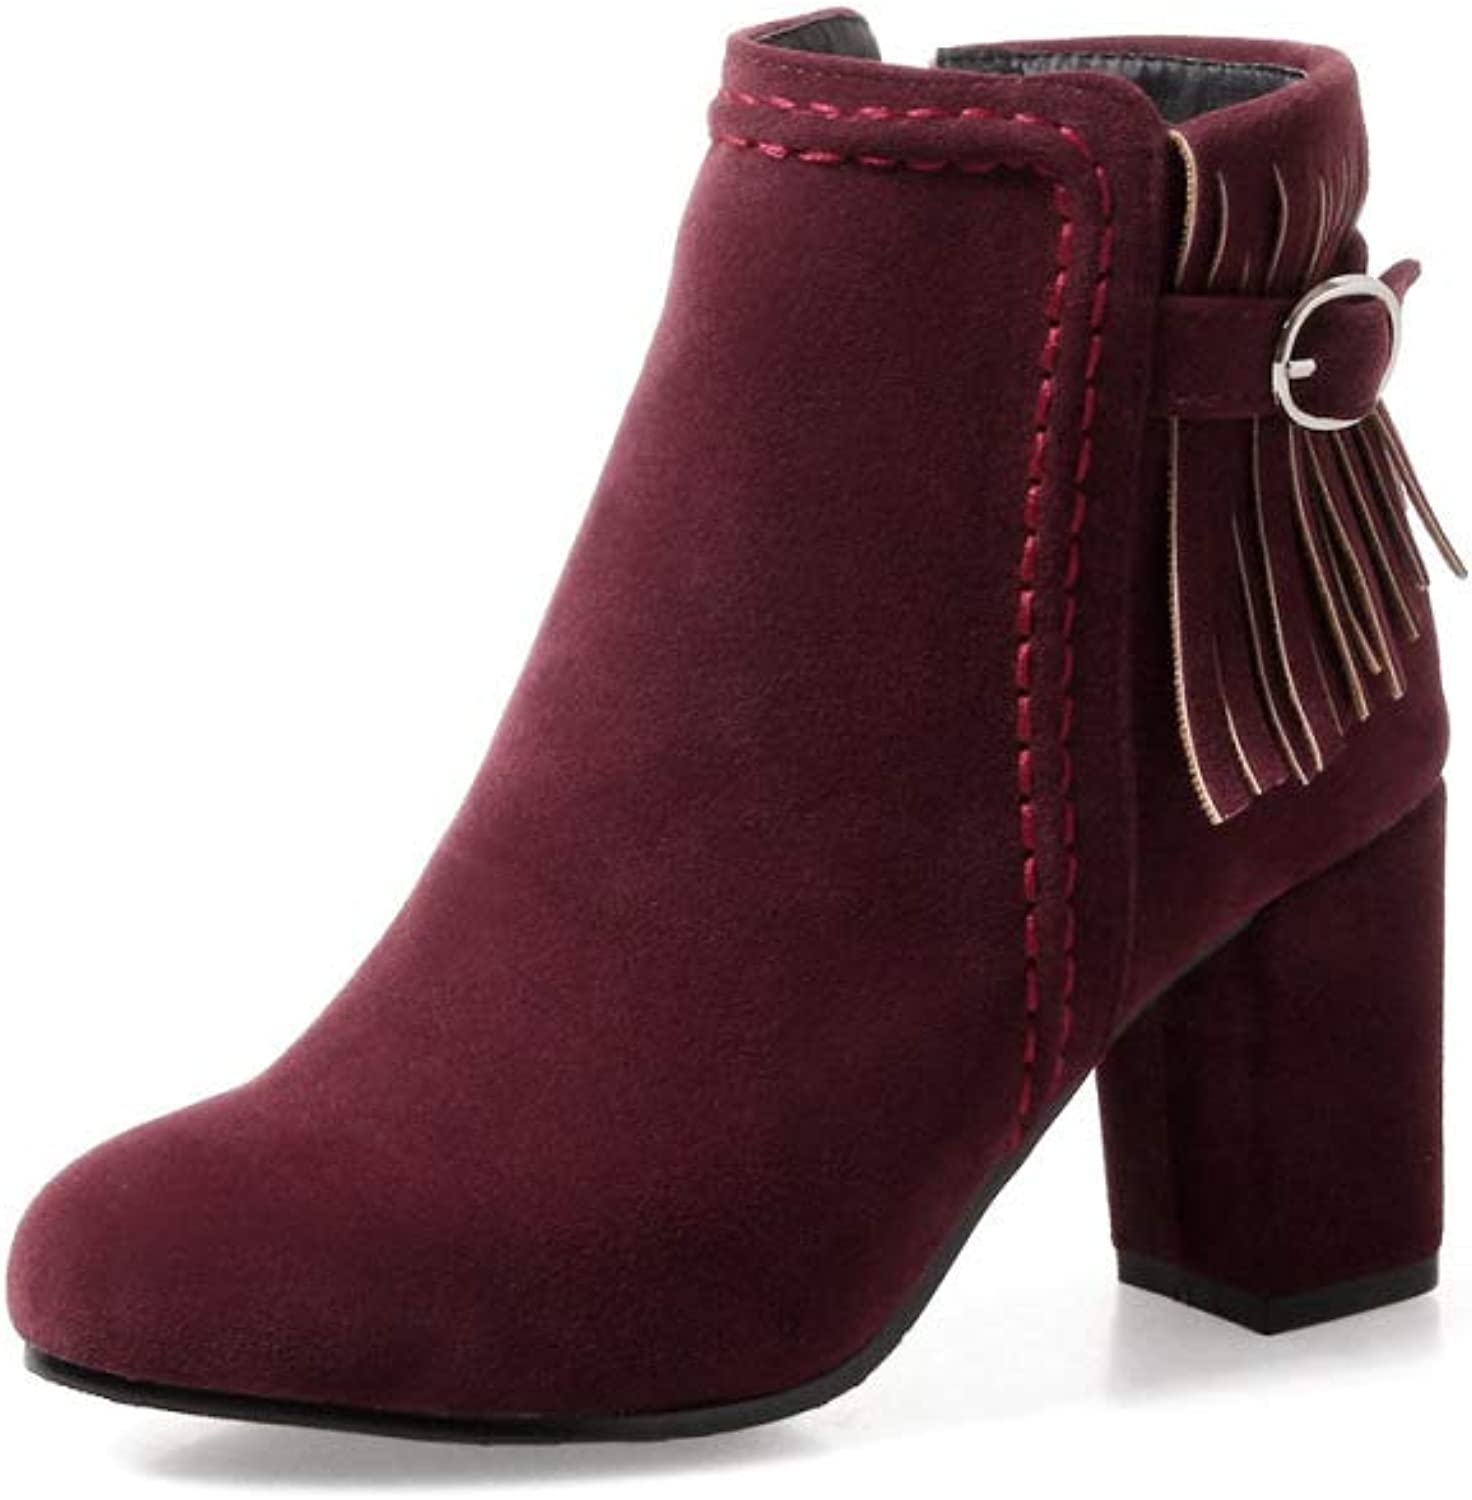 Women Fashion Simple Ankle Boots 2018 Winter New Tassel High Heel Boots Size 30-48,Wine red,34